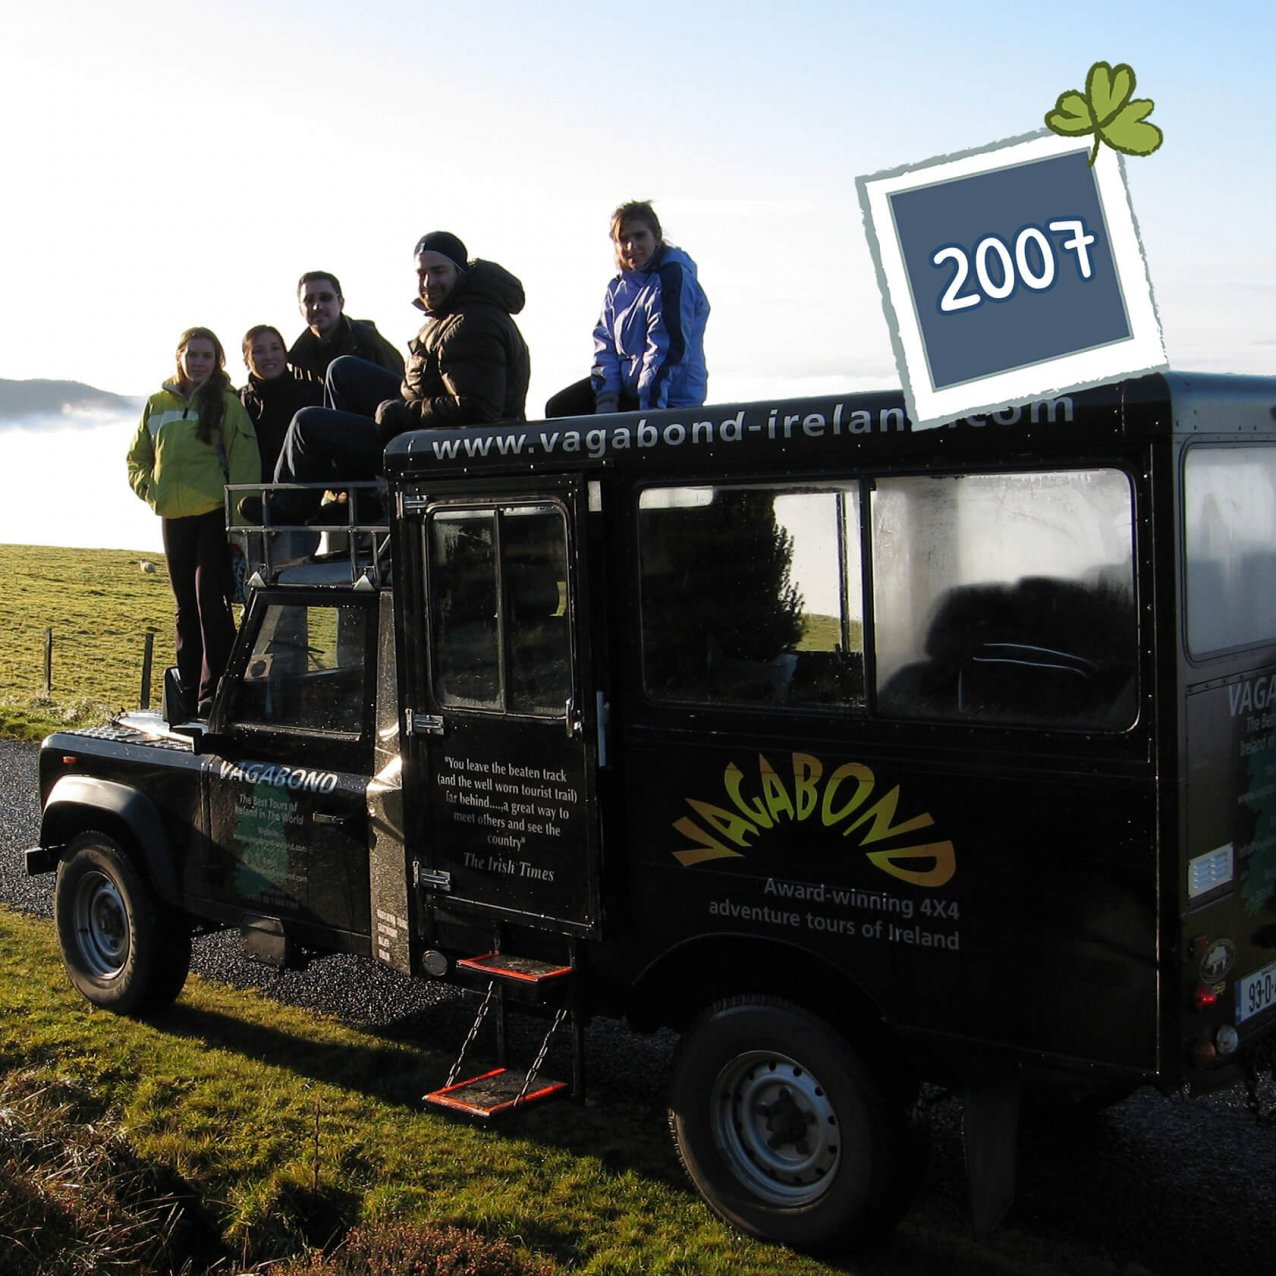 Vagabond Tours guest group sitting and standing on an original Land Rover Defender VagaTron tour vehicle with a 2007 date graphic in the top right corner